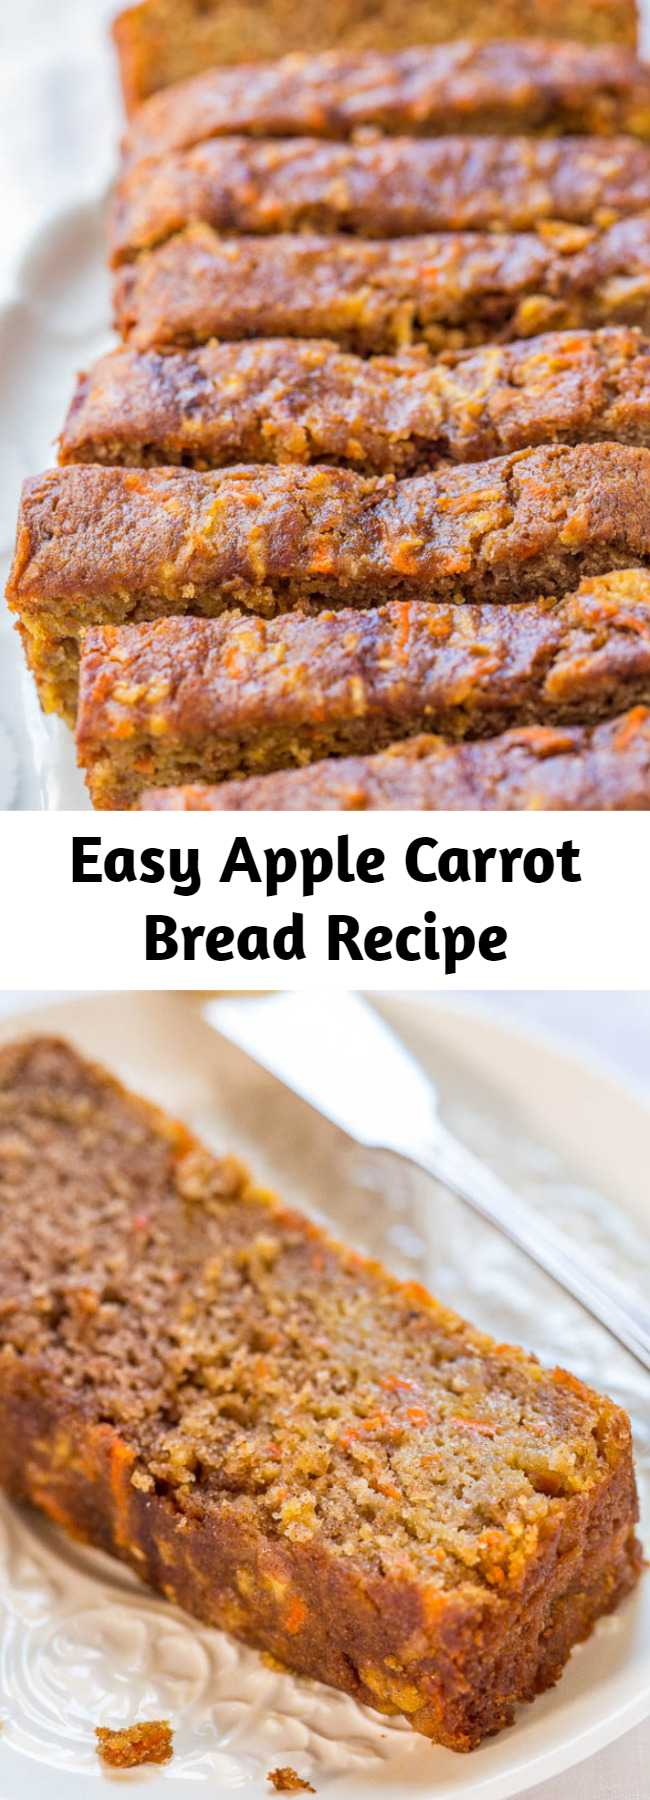 Easy Apple Carrot Bread Recipe - This apple carrot bread tastes like carrot cake that's been infused with apples. It's a no mixer recipe that goes from bowl to oven in minutes!